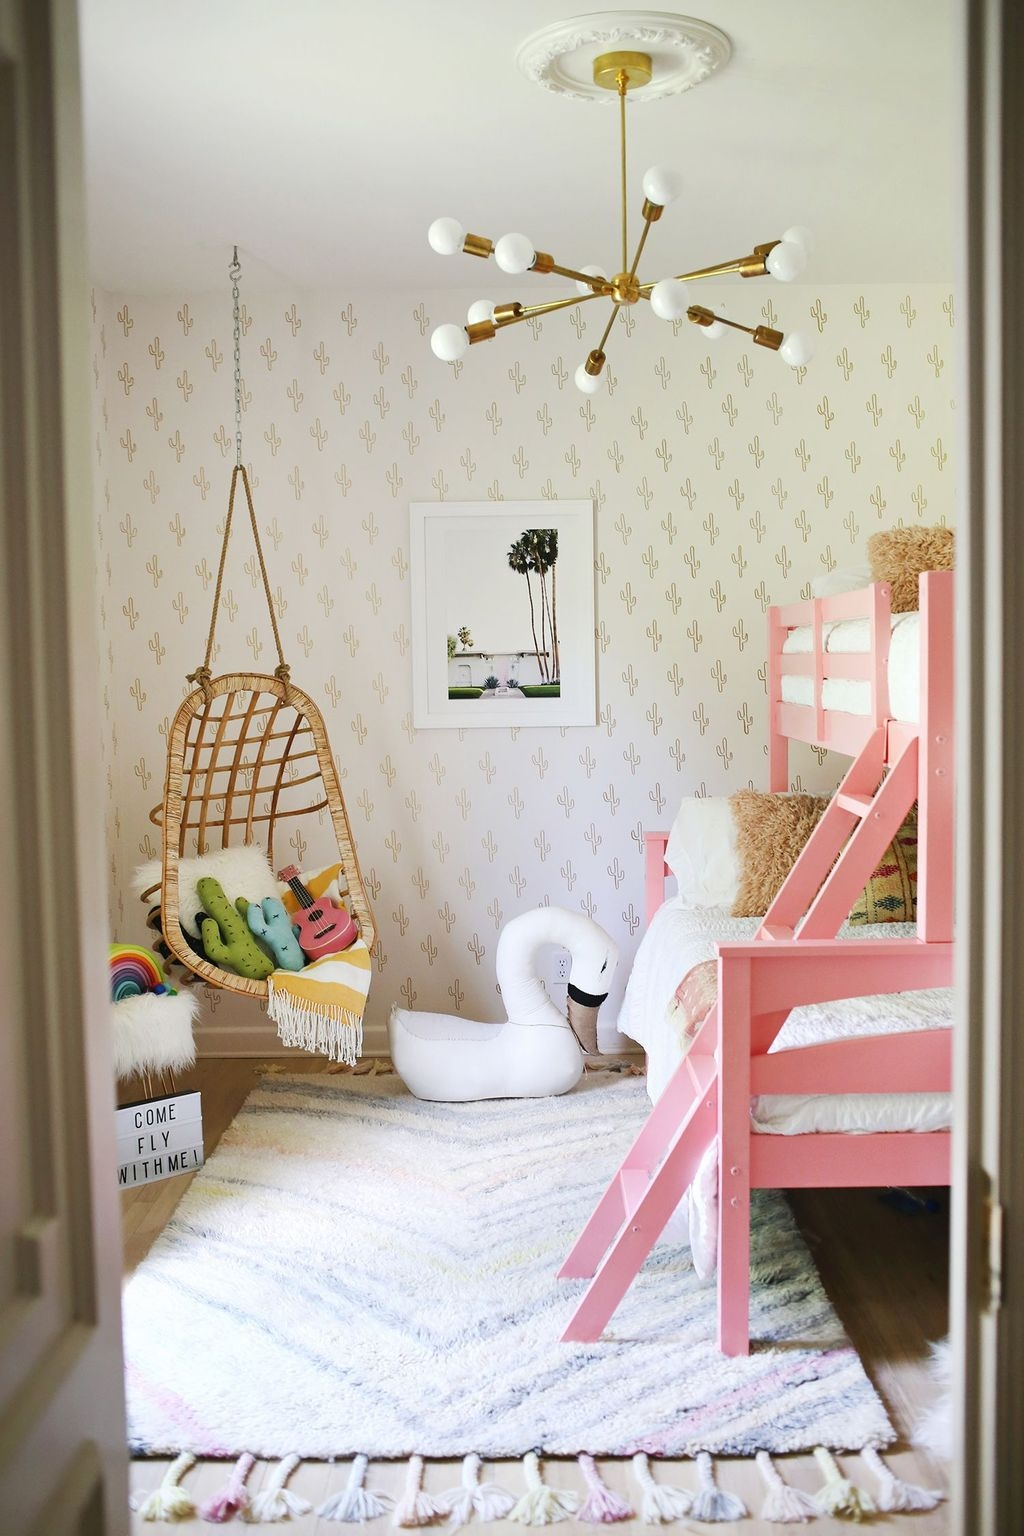 Inspiring Kids Room Design Ideas 31